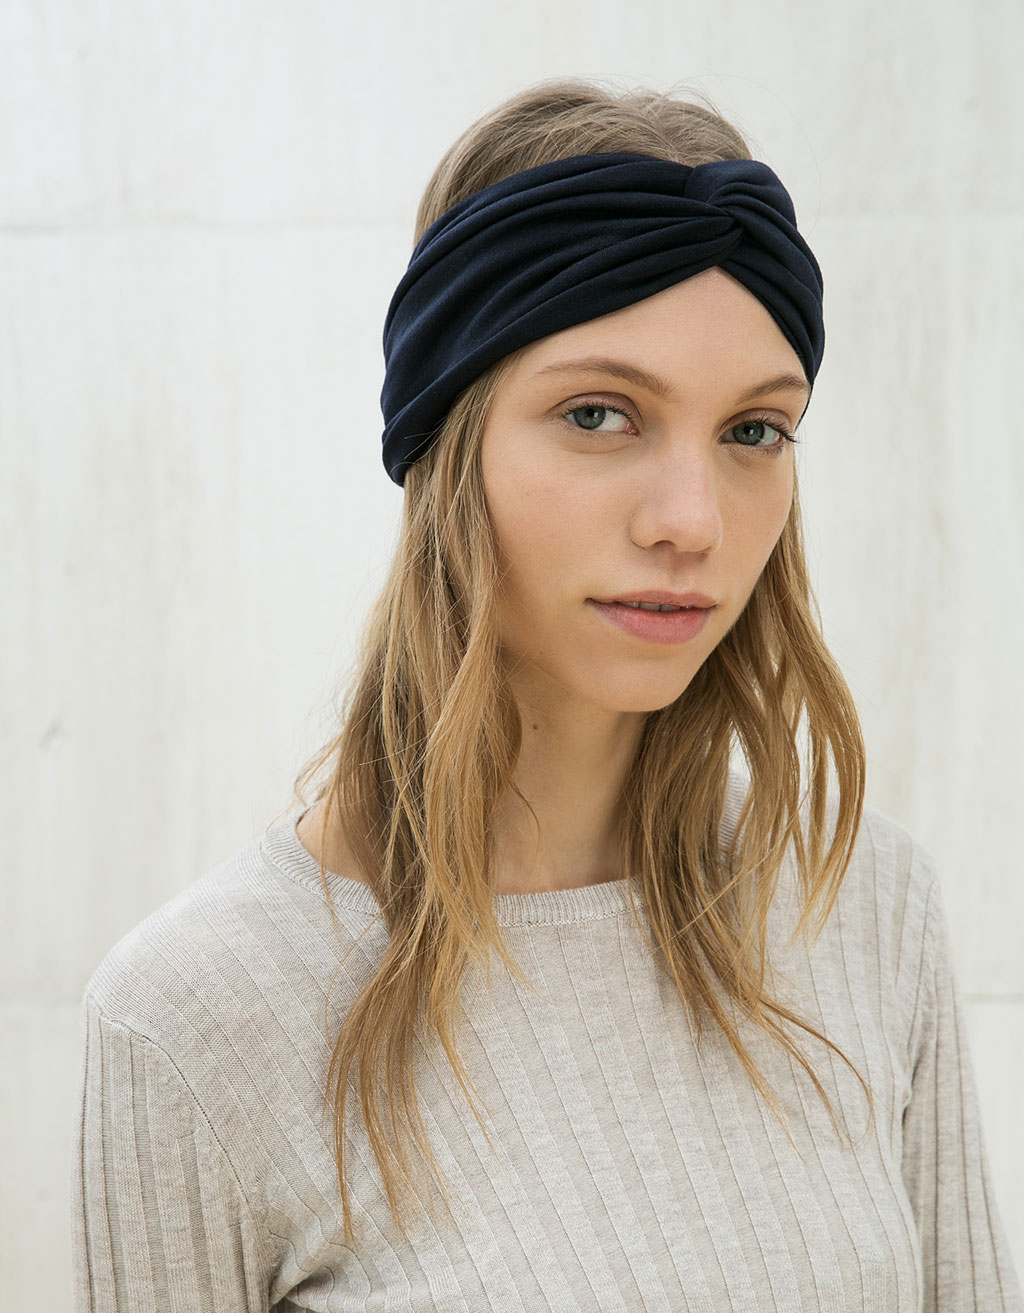 Sweater headband